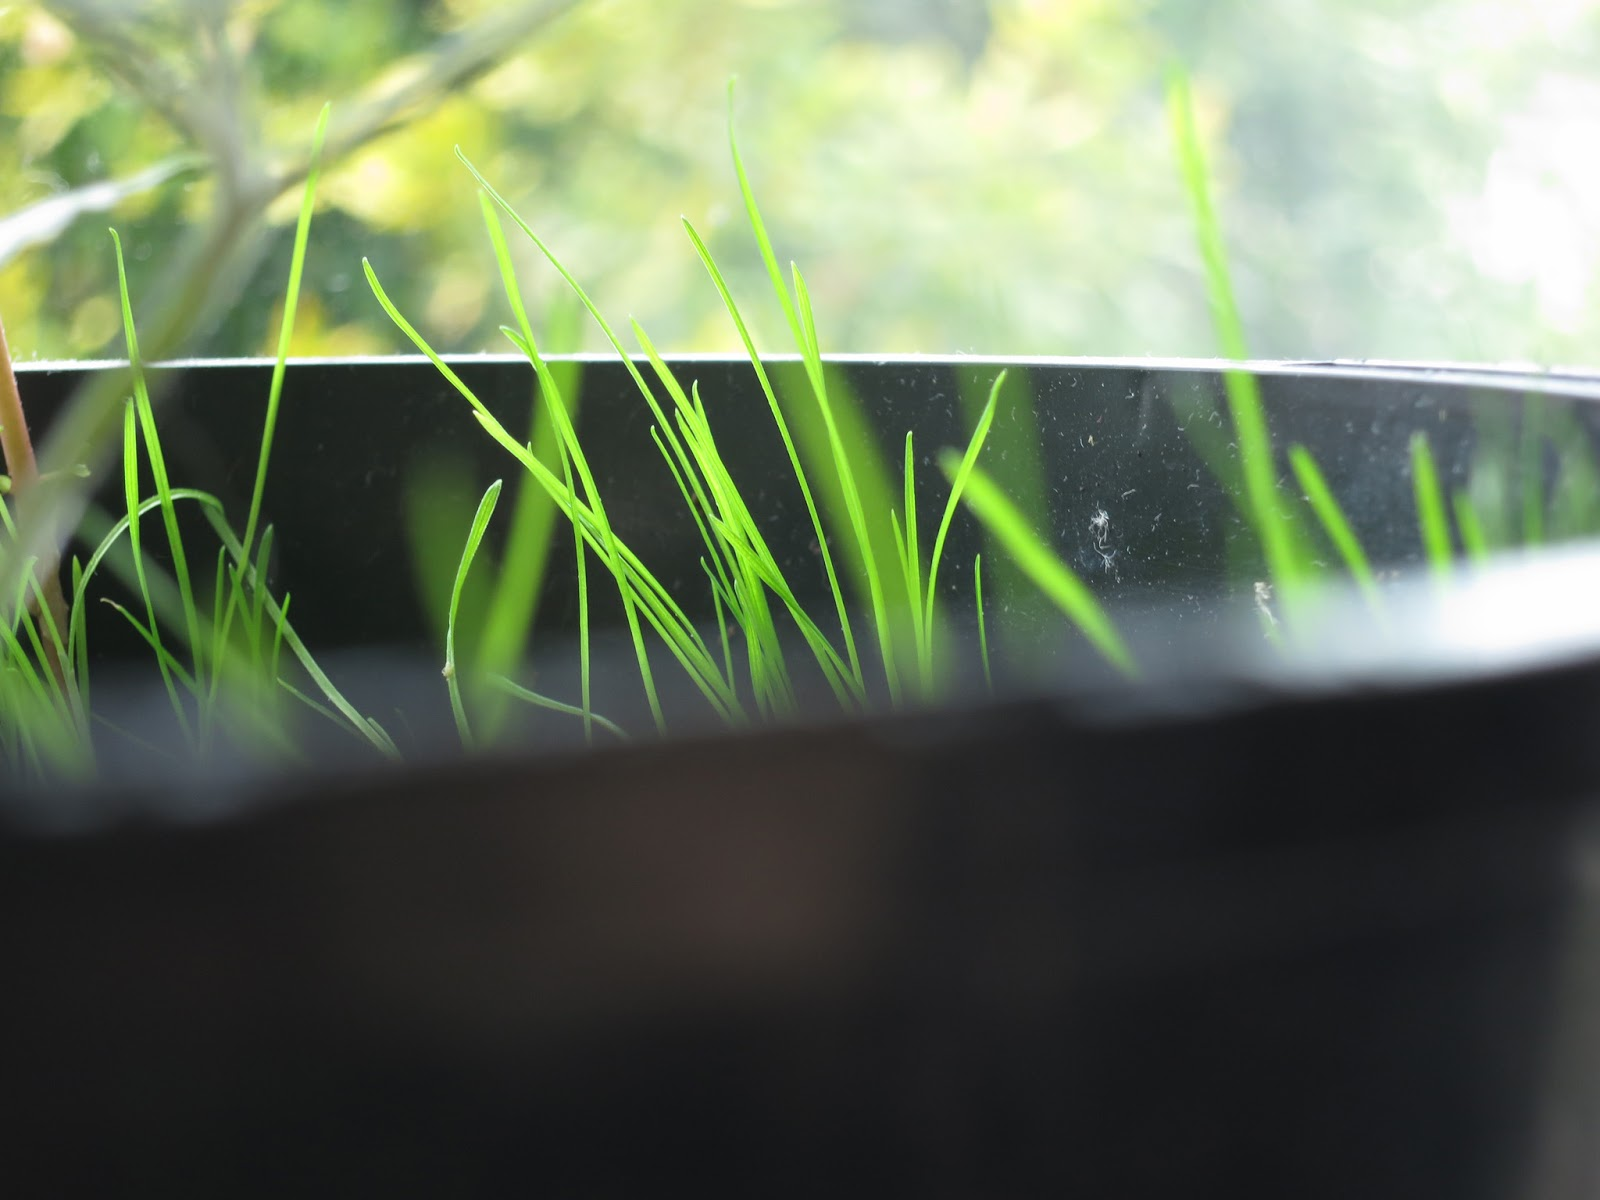 Young grass in a black pot on an indoor windowsill.